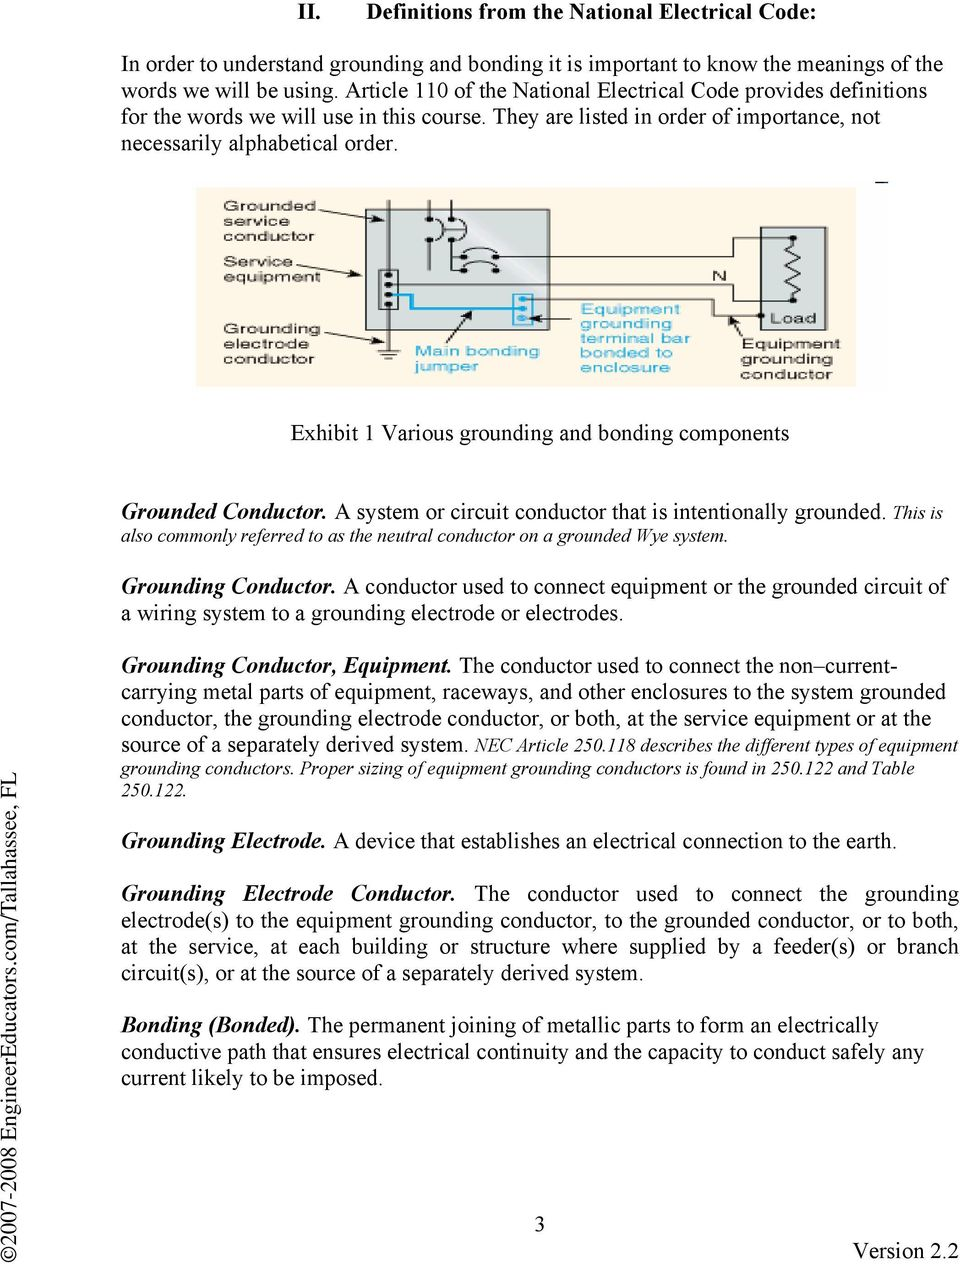 Grounding And Bonding Electrical Systems Pdf Residential Wiring Exhibit 1 Various Components Grounded Conductor A System Or Circuit That